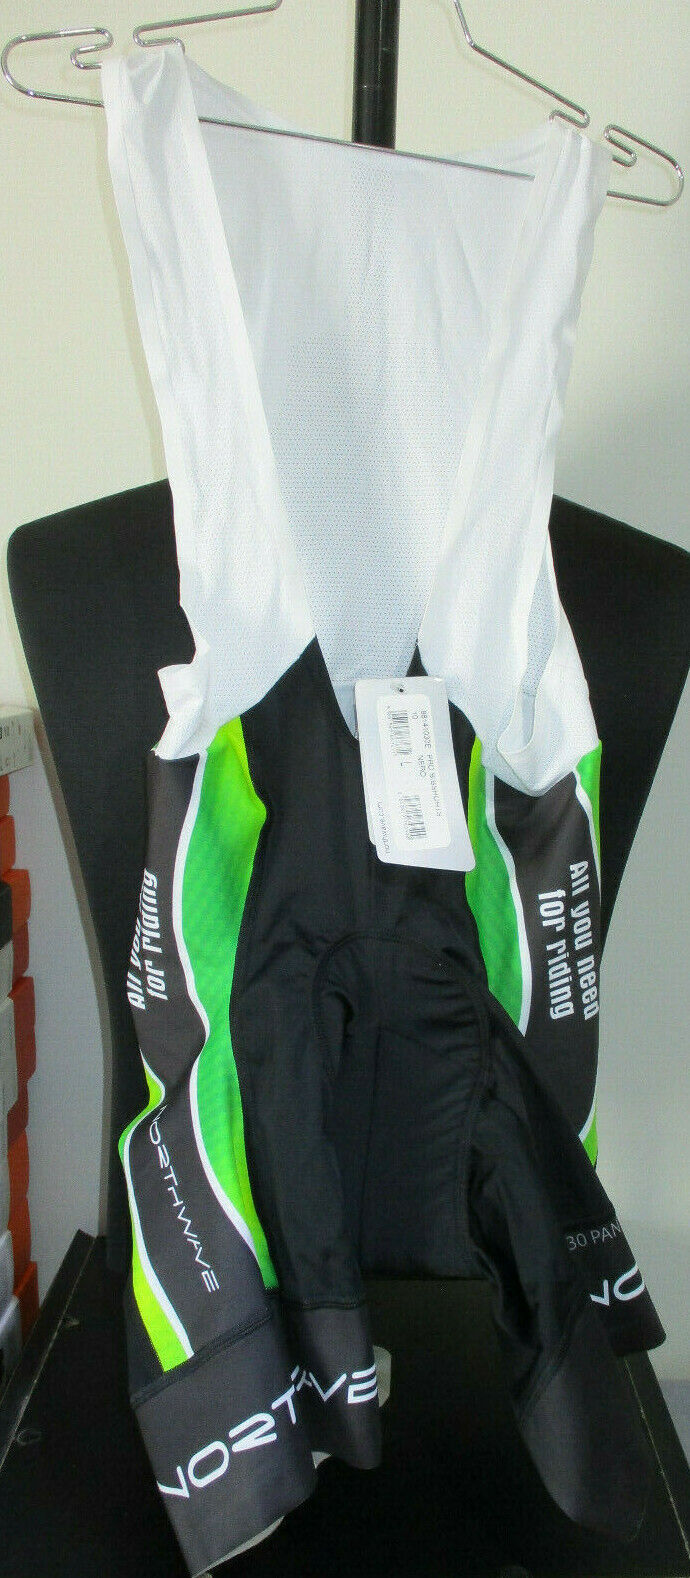 New Northwave Men Pro Cycling Bibshorts Bib Large  Road Bike Race Design  wholesale cheap and high quality